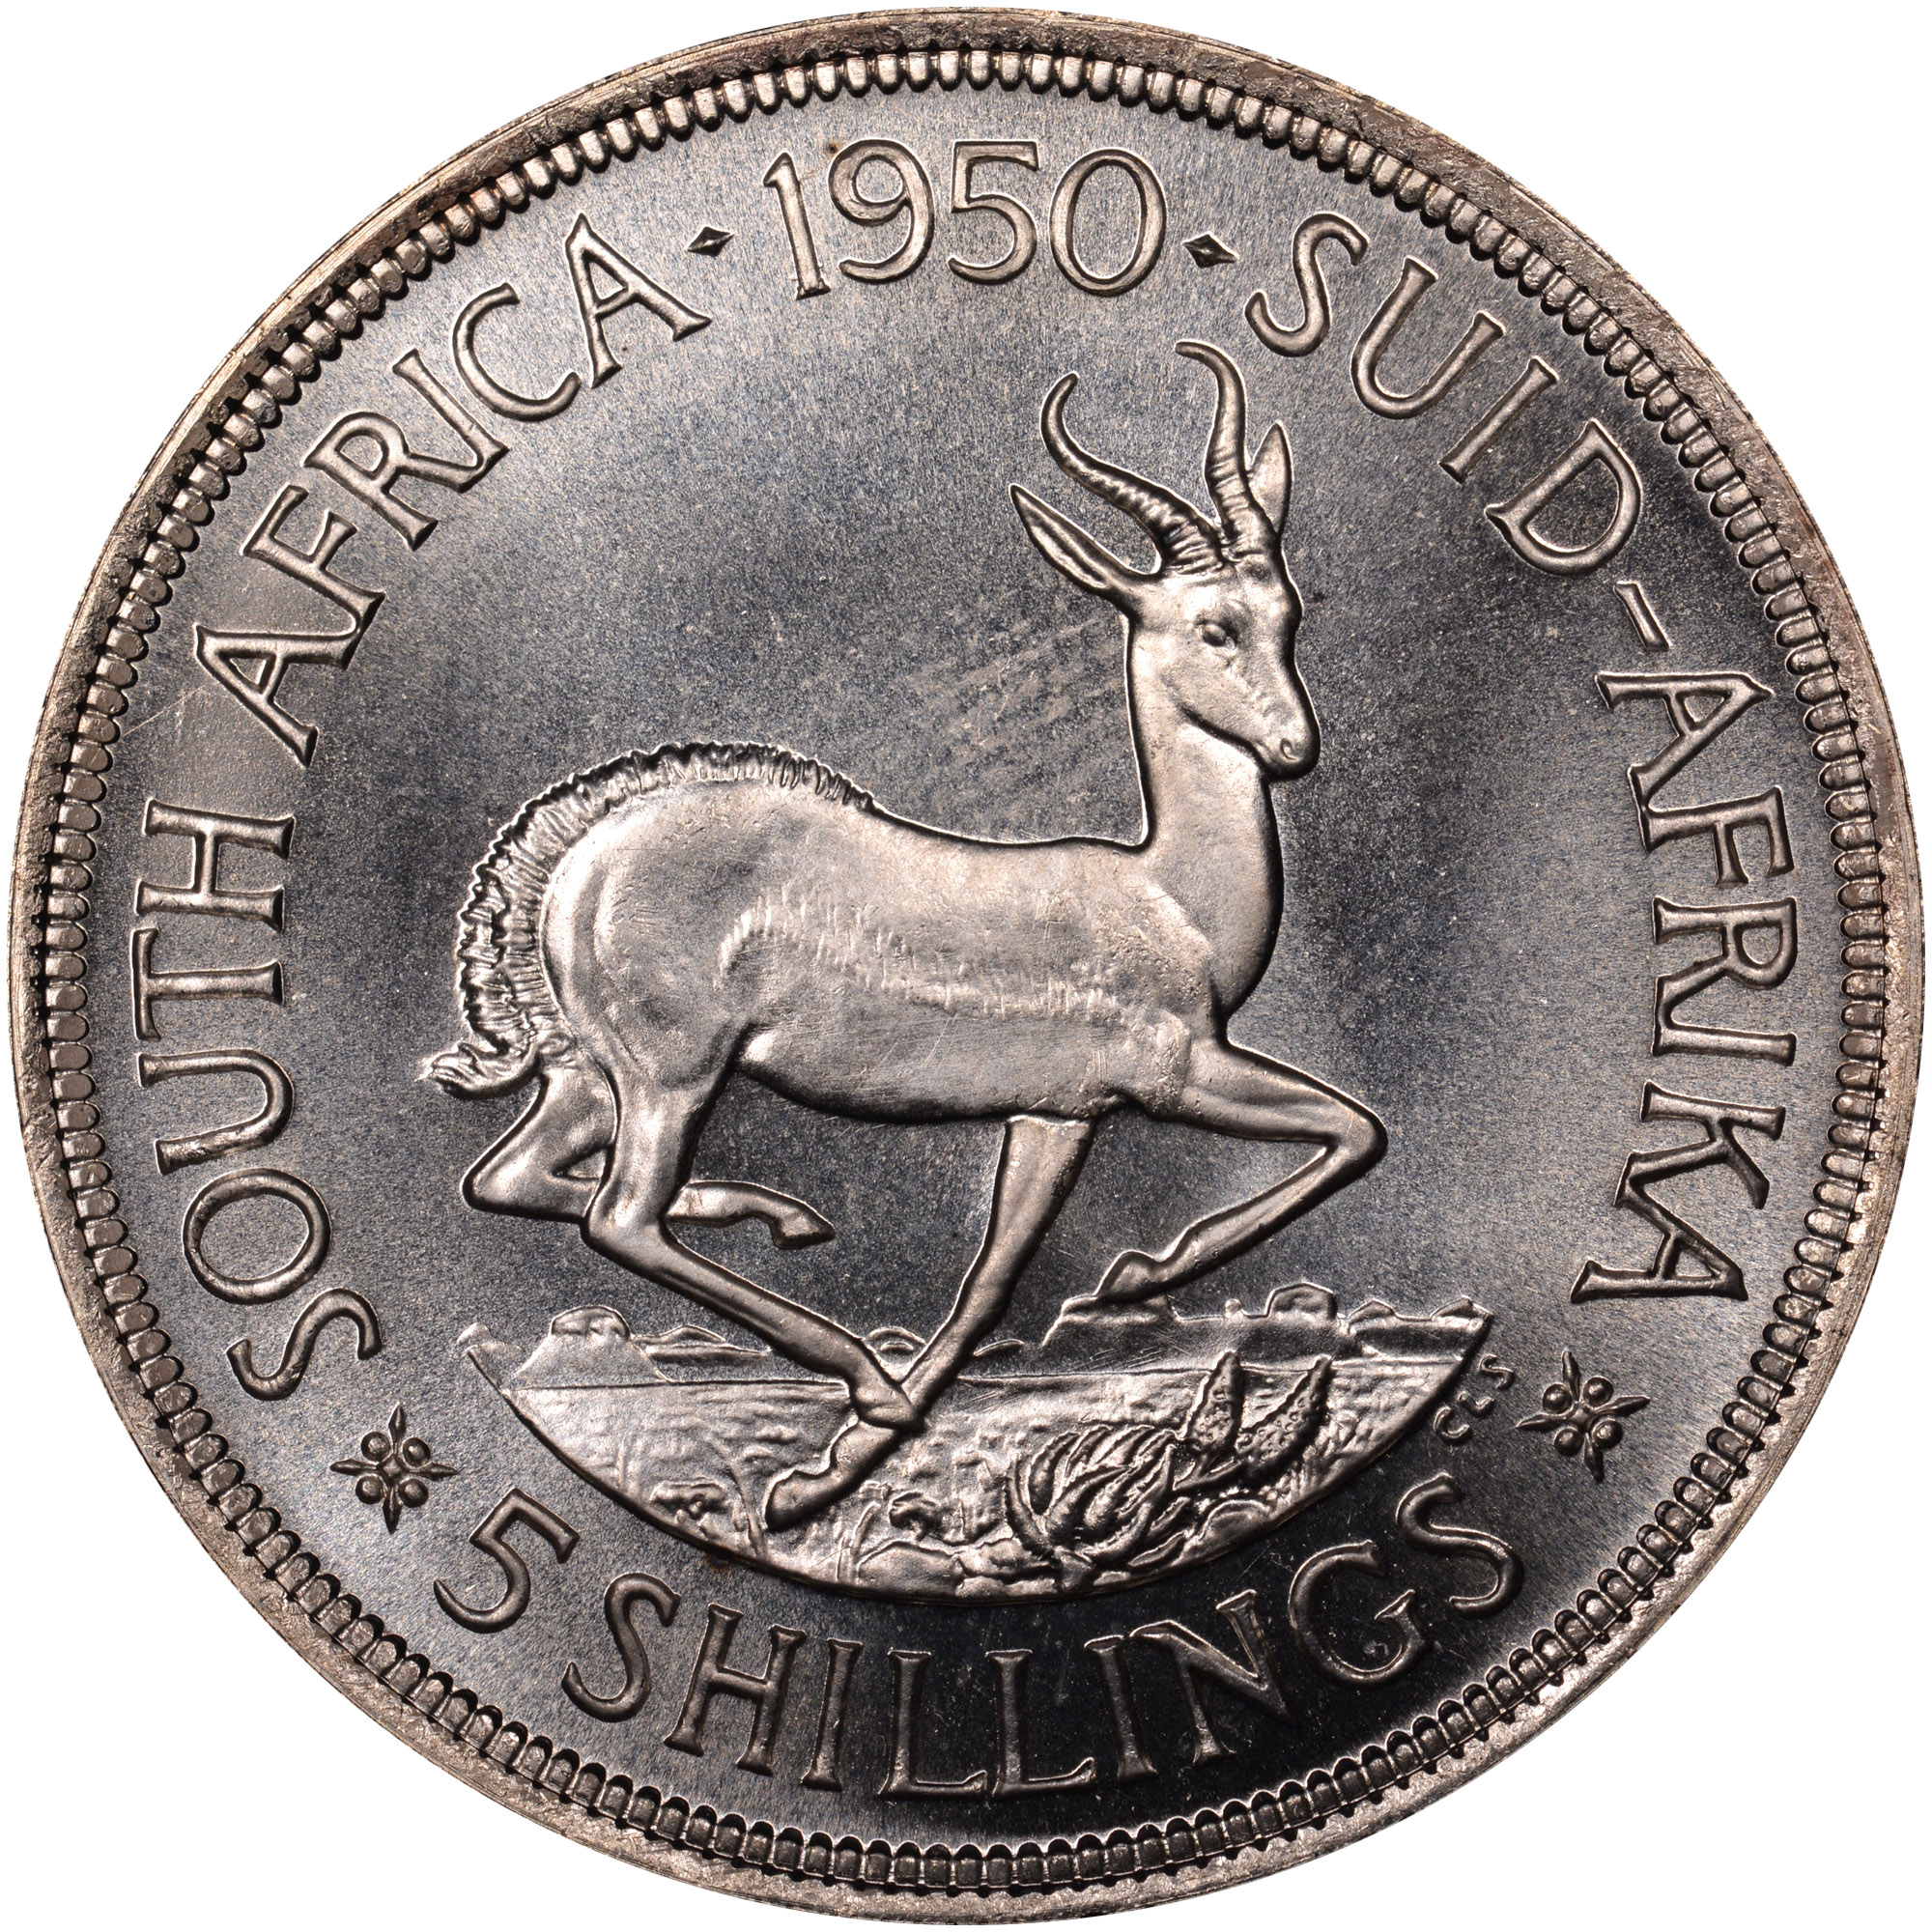 South Africa 5 Shillings Km 40 1 Prices Amp Values